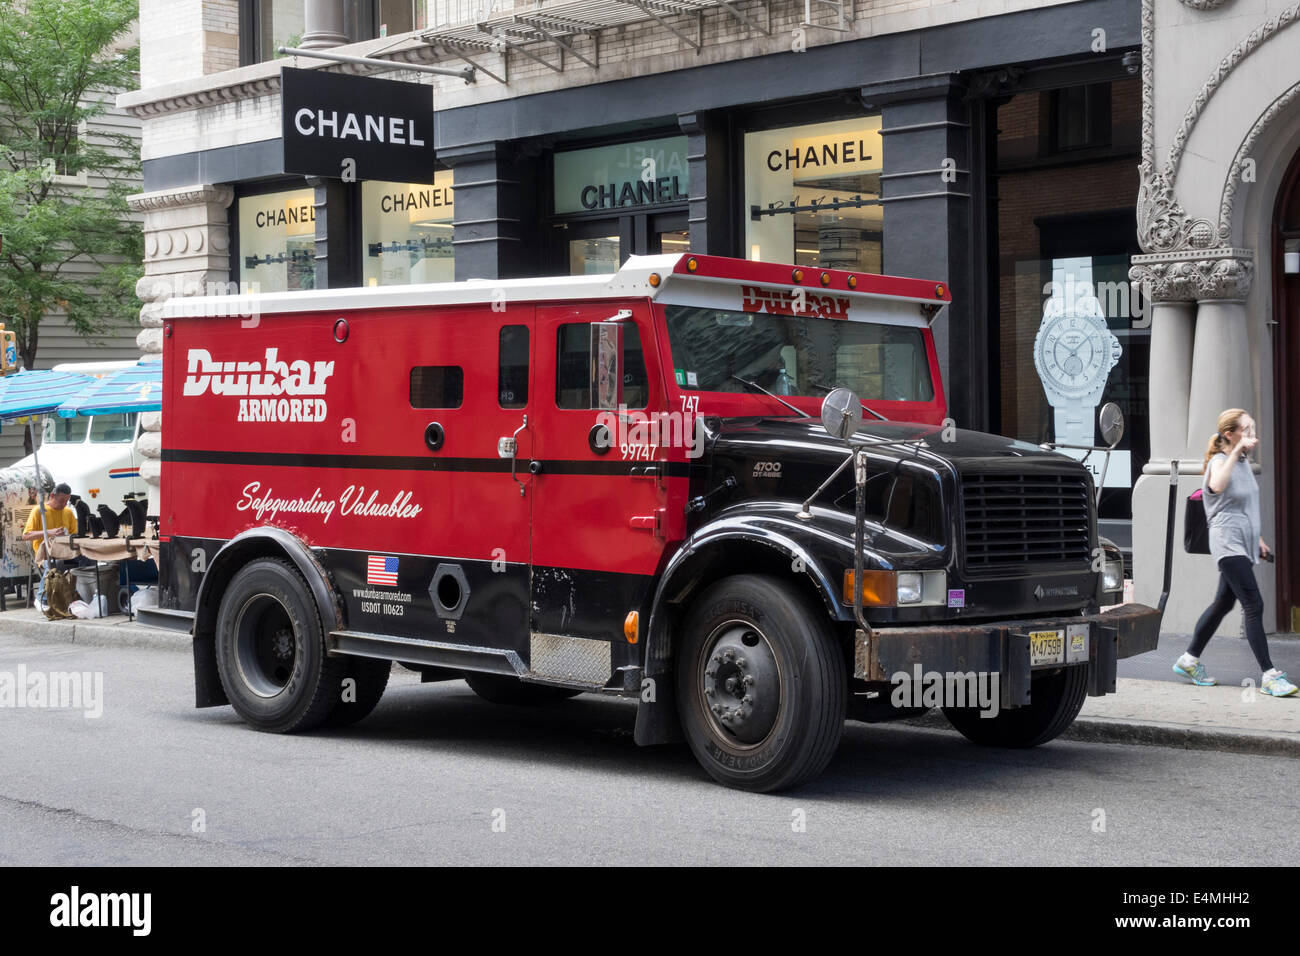 Armored car picking up money from a Chanel shop in Soho in New York City - Stock Image